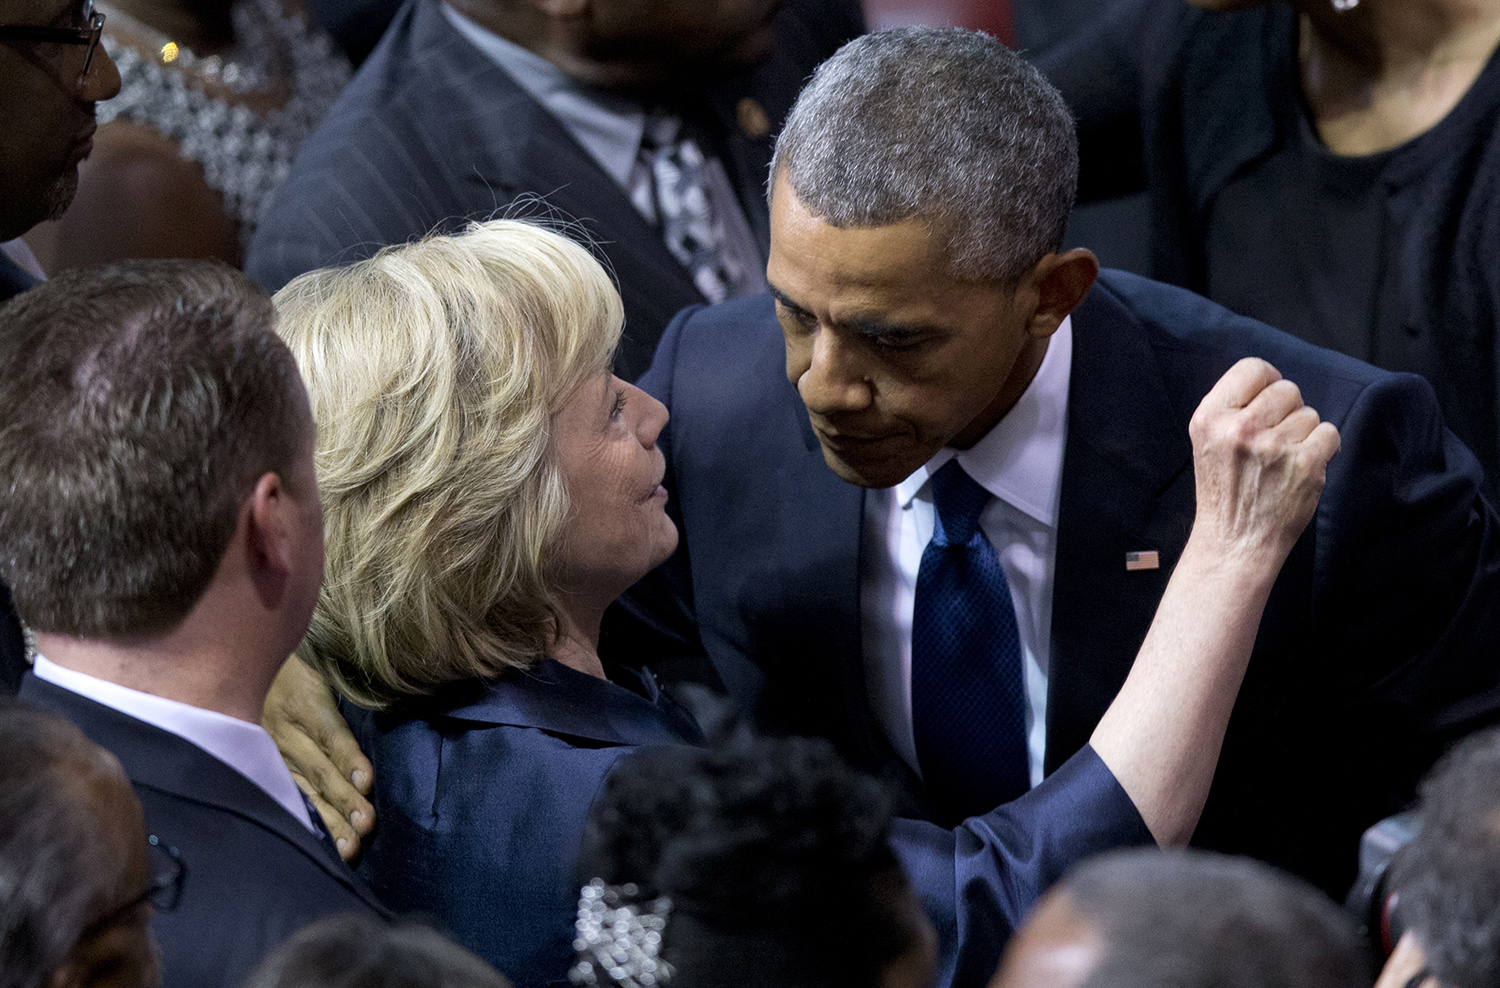 Obama was briefed on unverified Russian report claiming Clinton approved plan to tie Trump to Putin and DNC hack